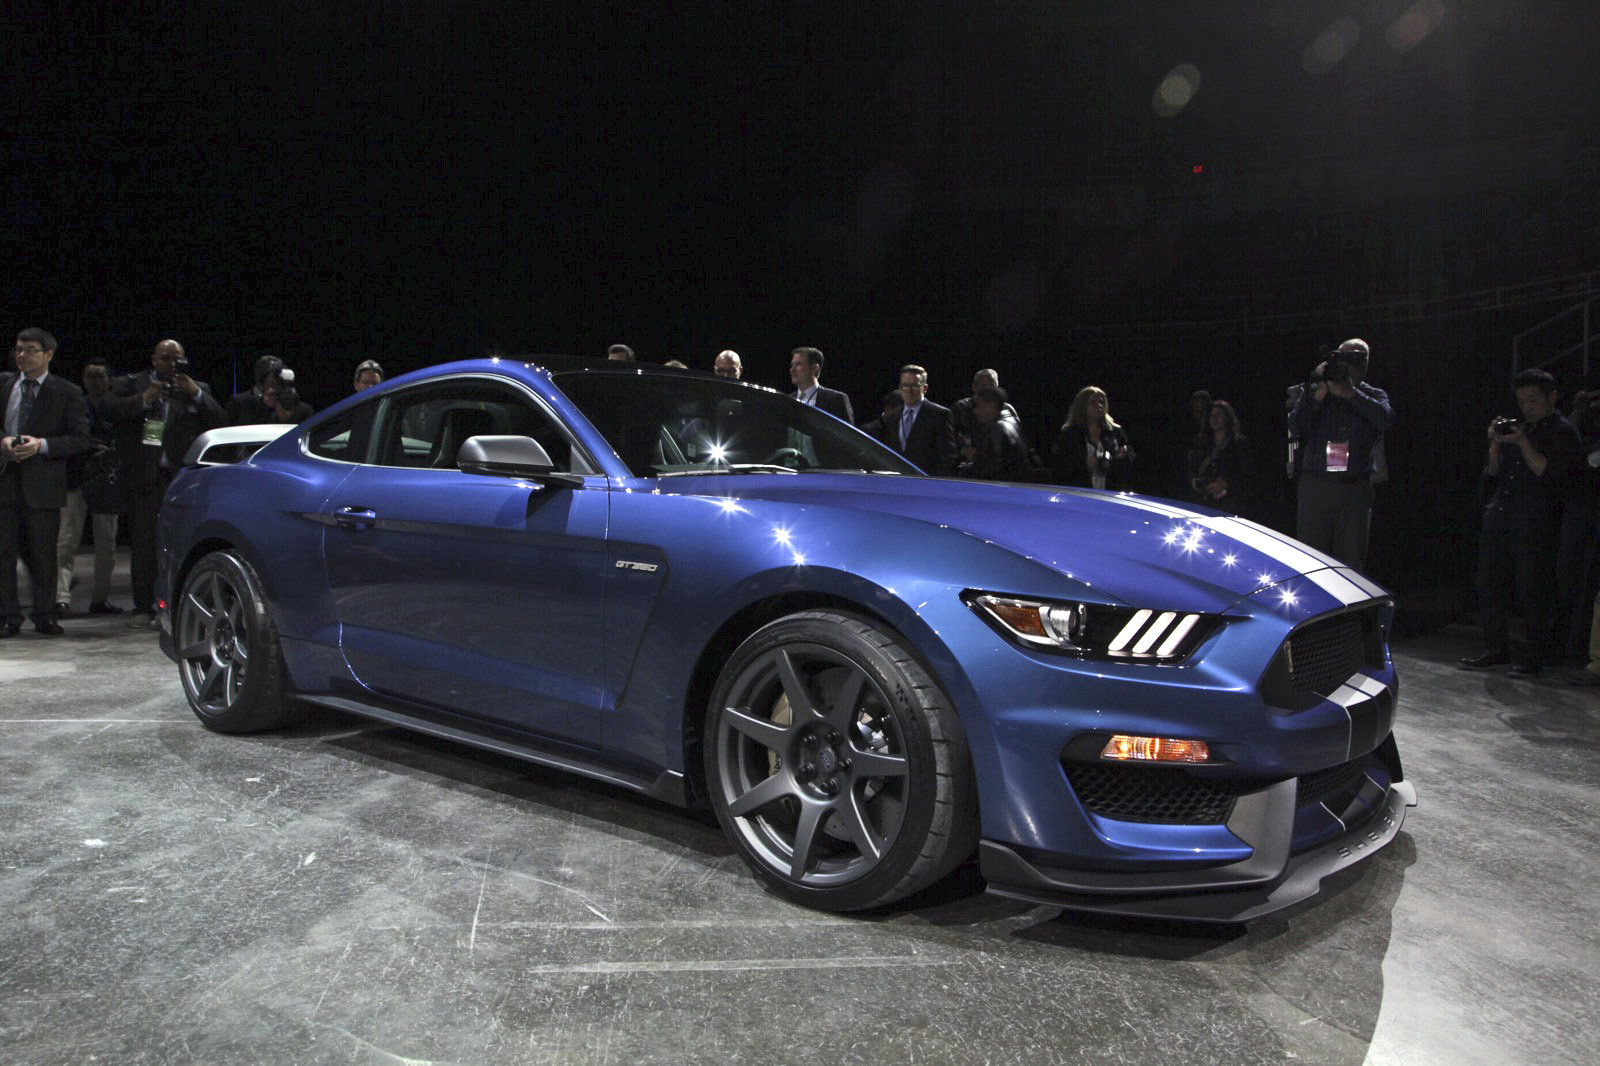 Gt350r Review >> 2016 Ford Shelby GT350R Mustang - Picture 612598 | car review @ Top Speed